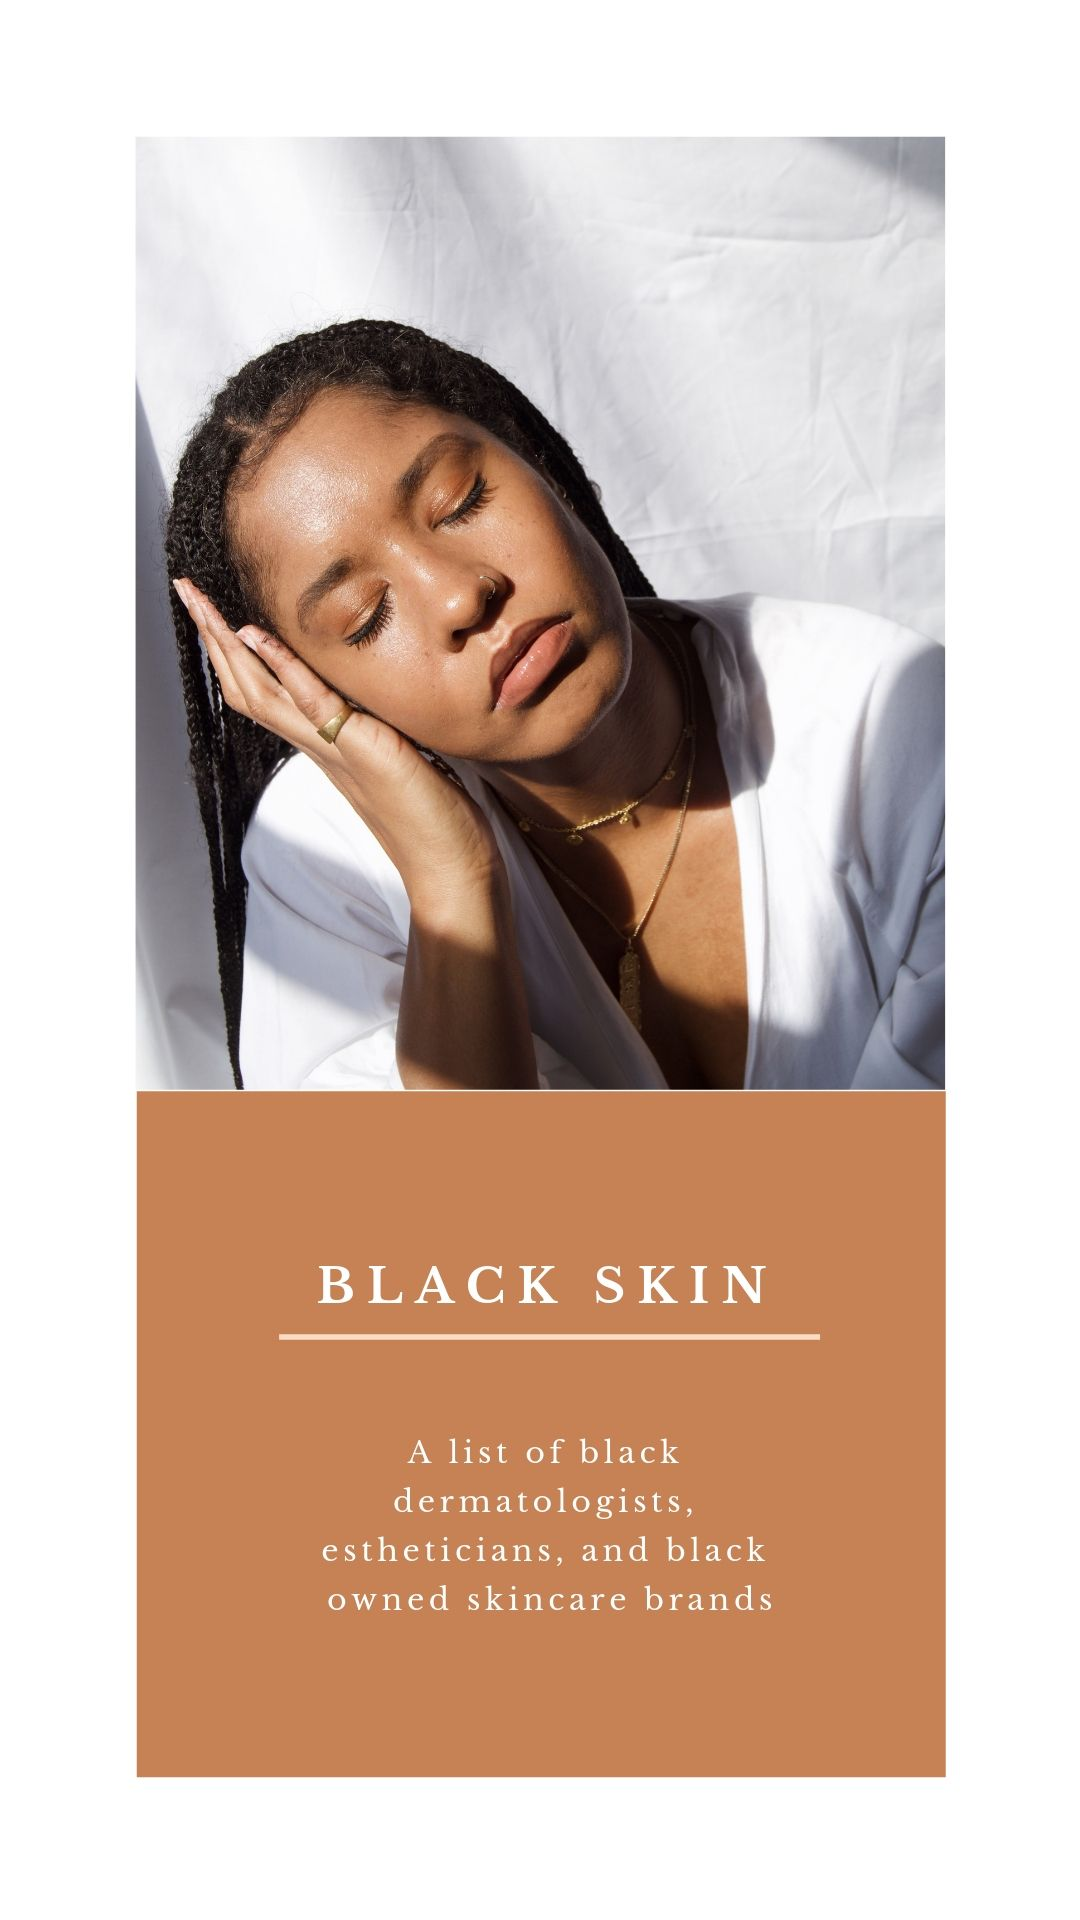 Black Owned Skincare brands, estheticians, and